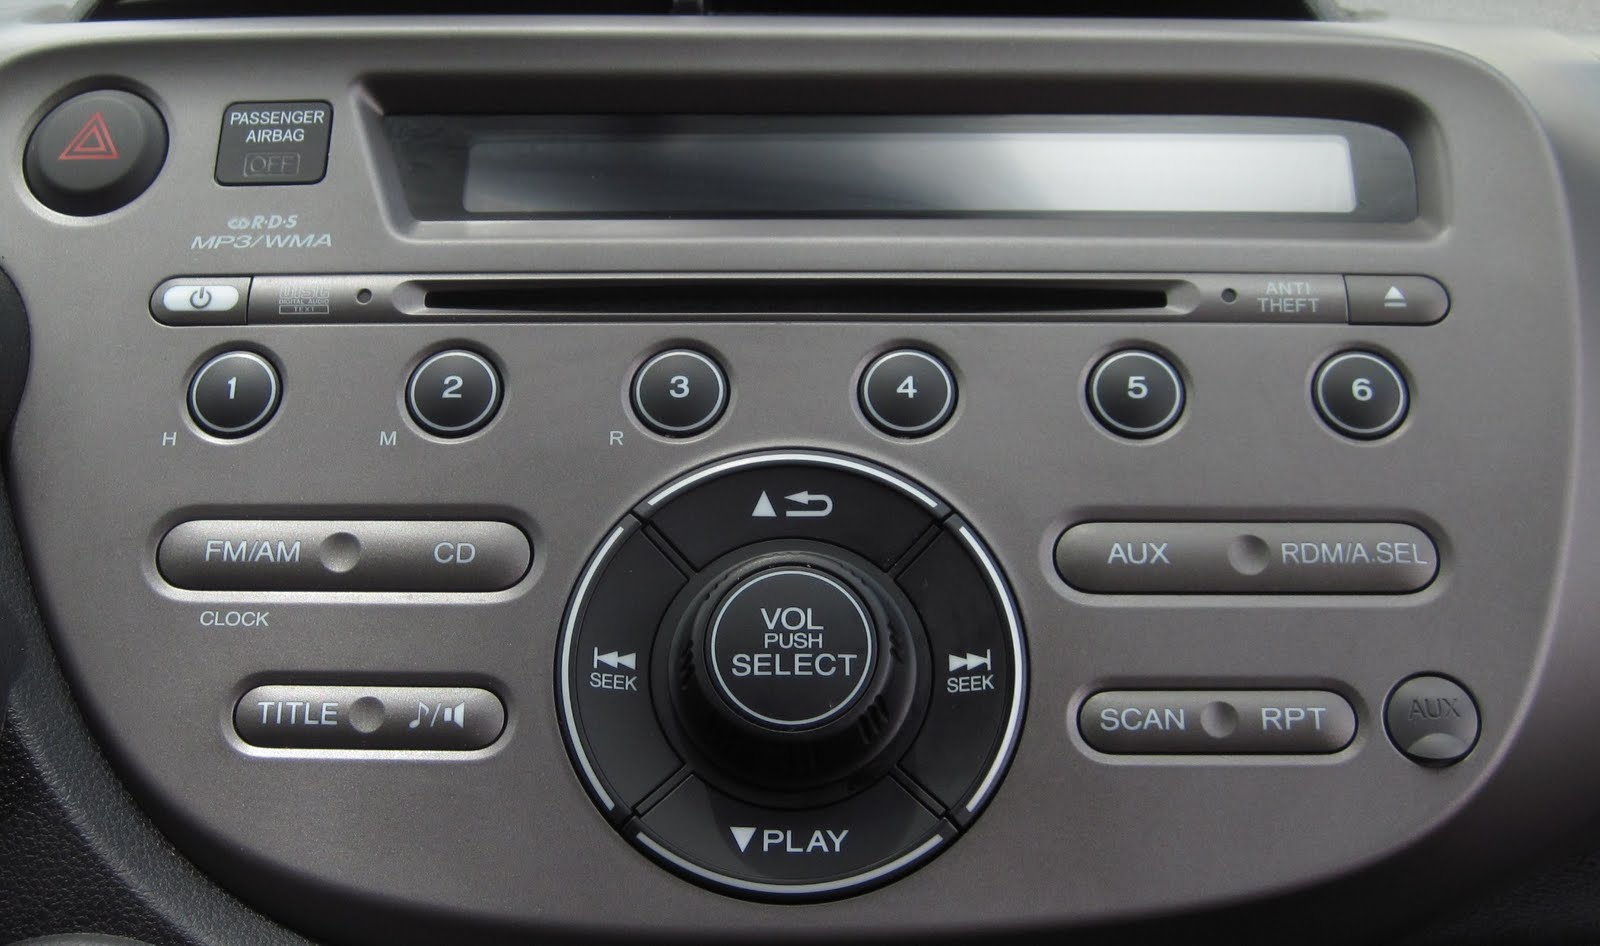 UI Flaws iPod Interface with Honda Fit Radio